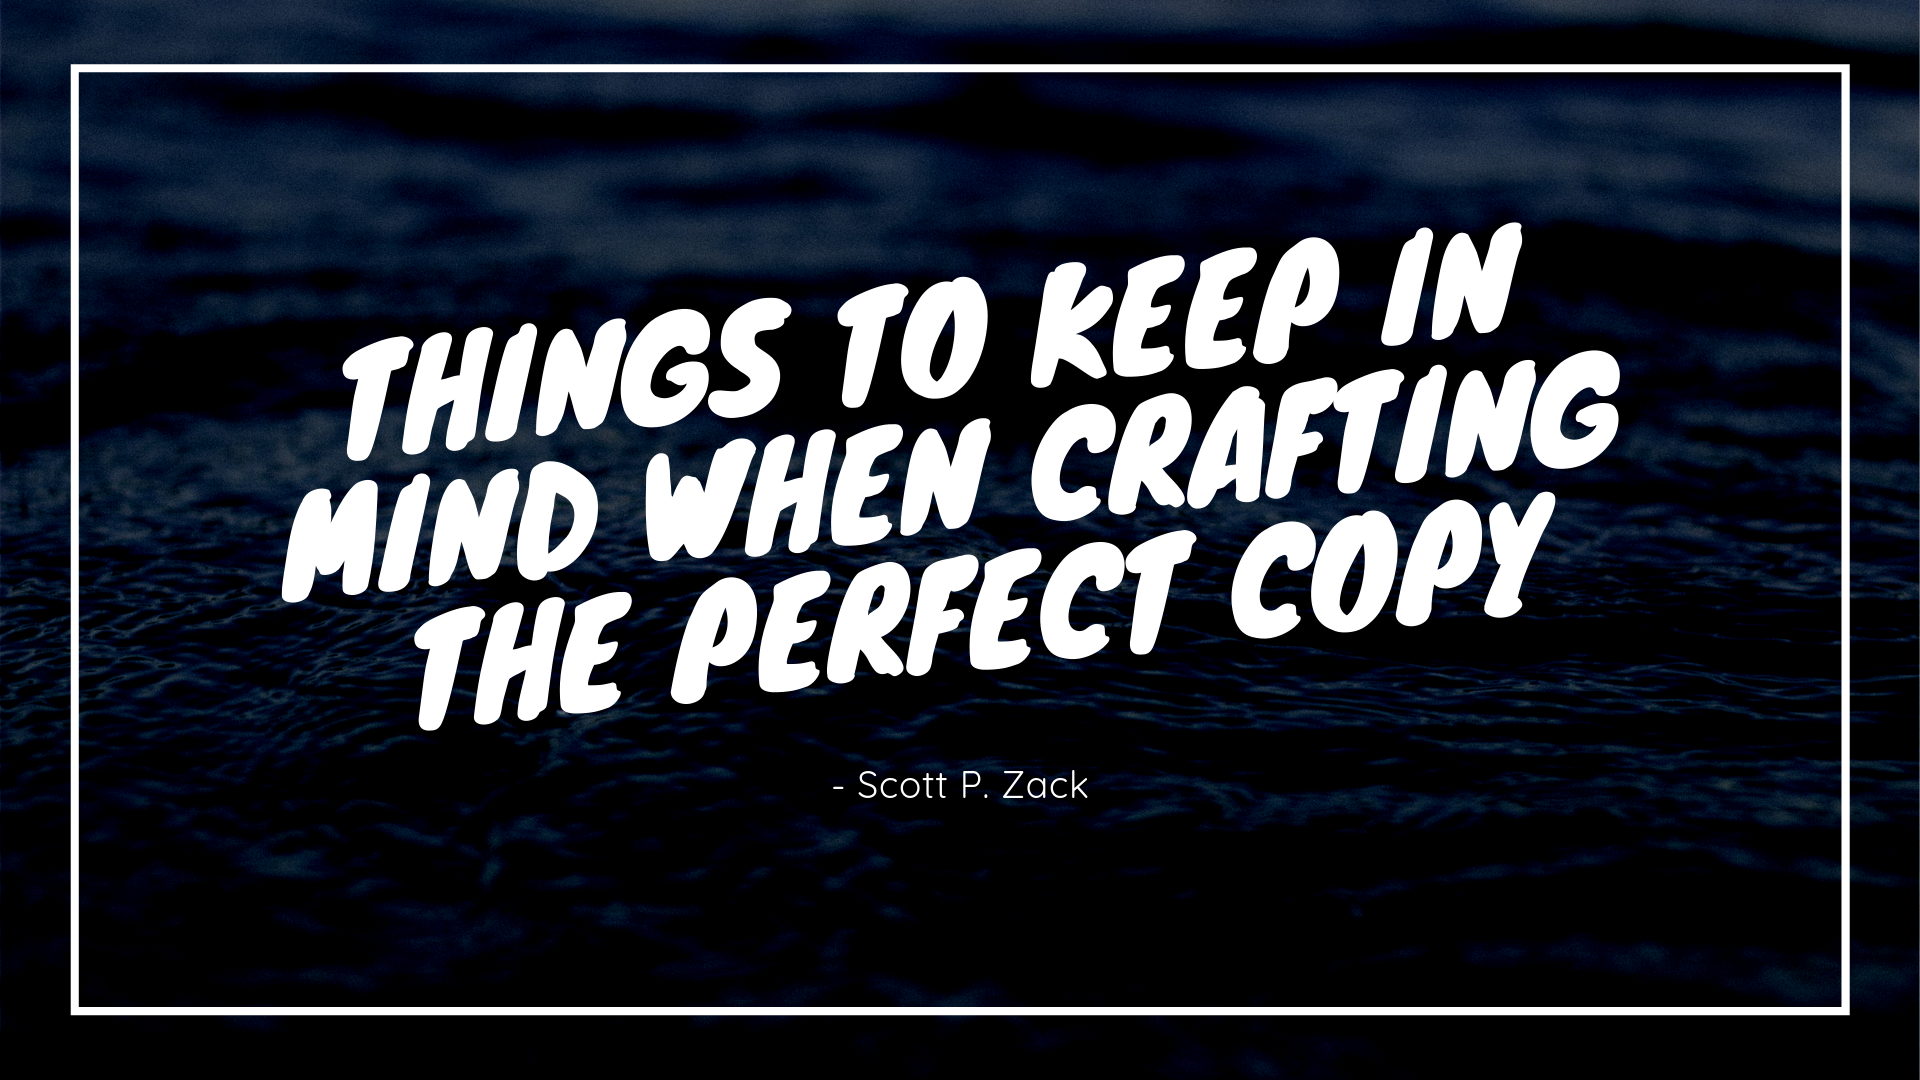 Scott P. Zack: Things to Keep in Mind When Crafting the Perfect Copy for your Blog